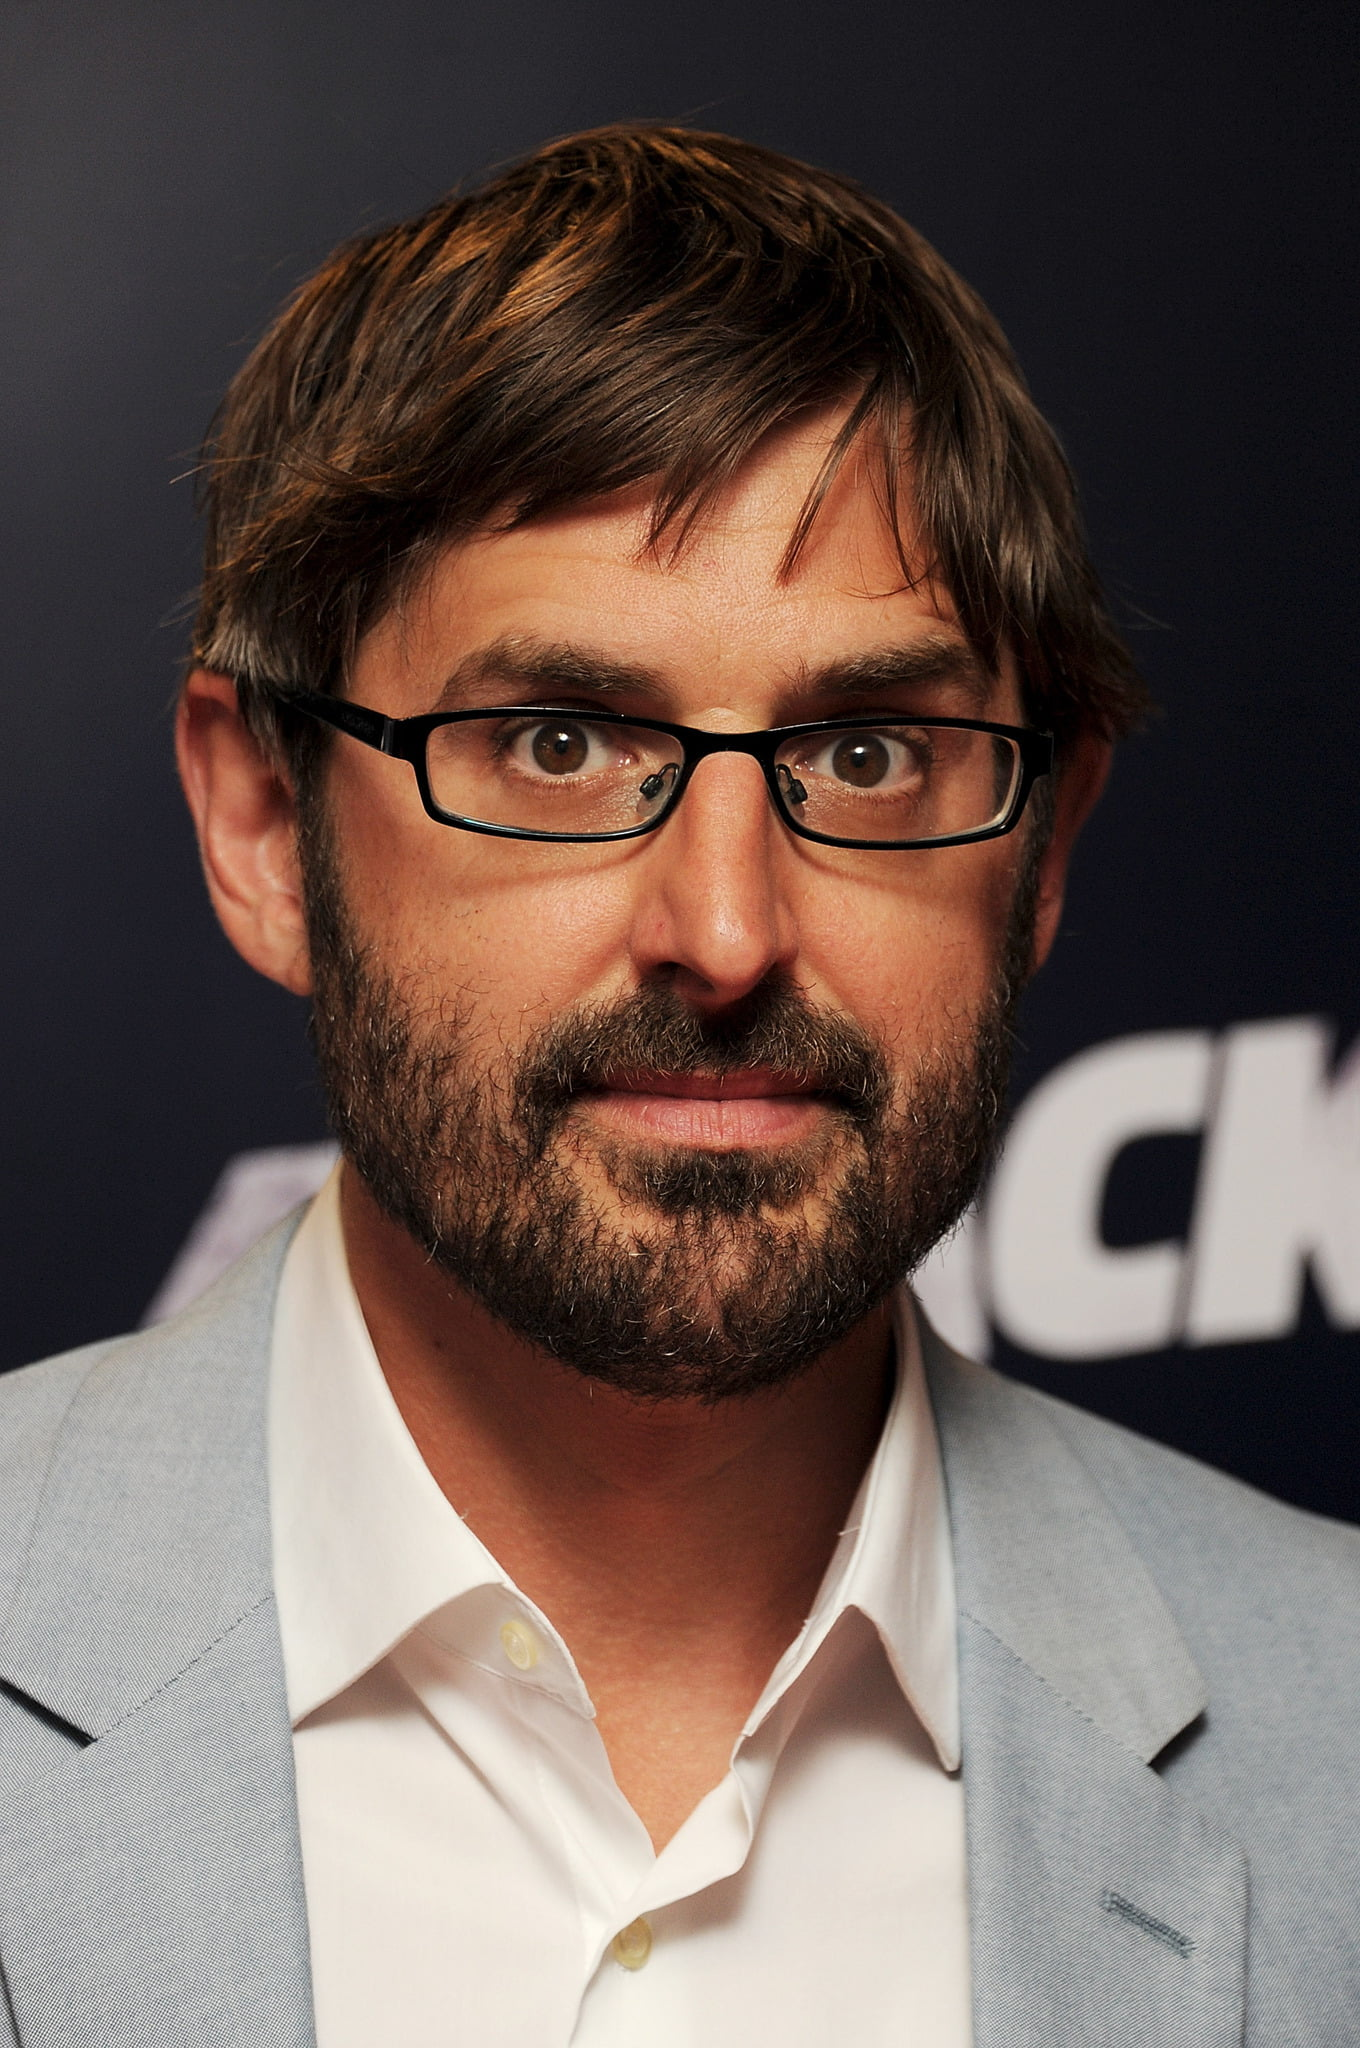 Louis Theroux documentary maker and keynote speaker